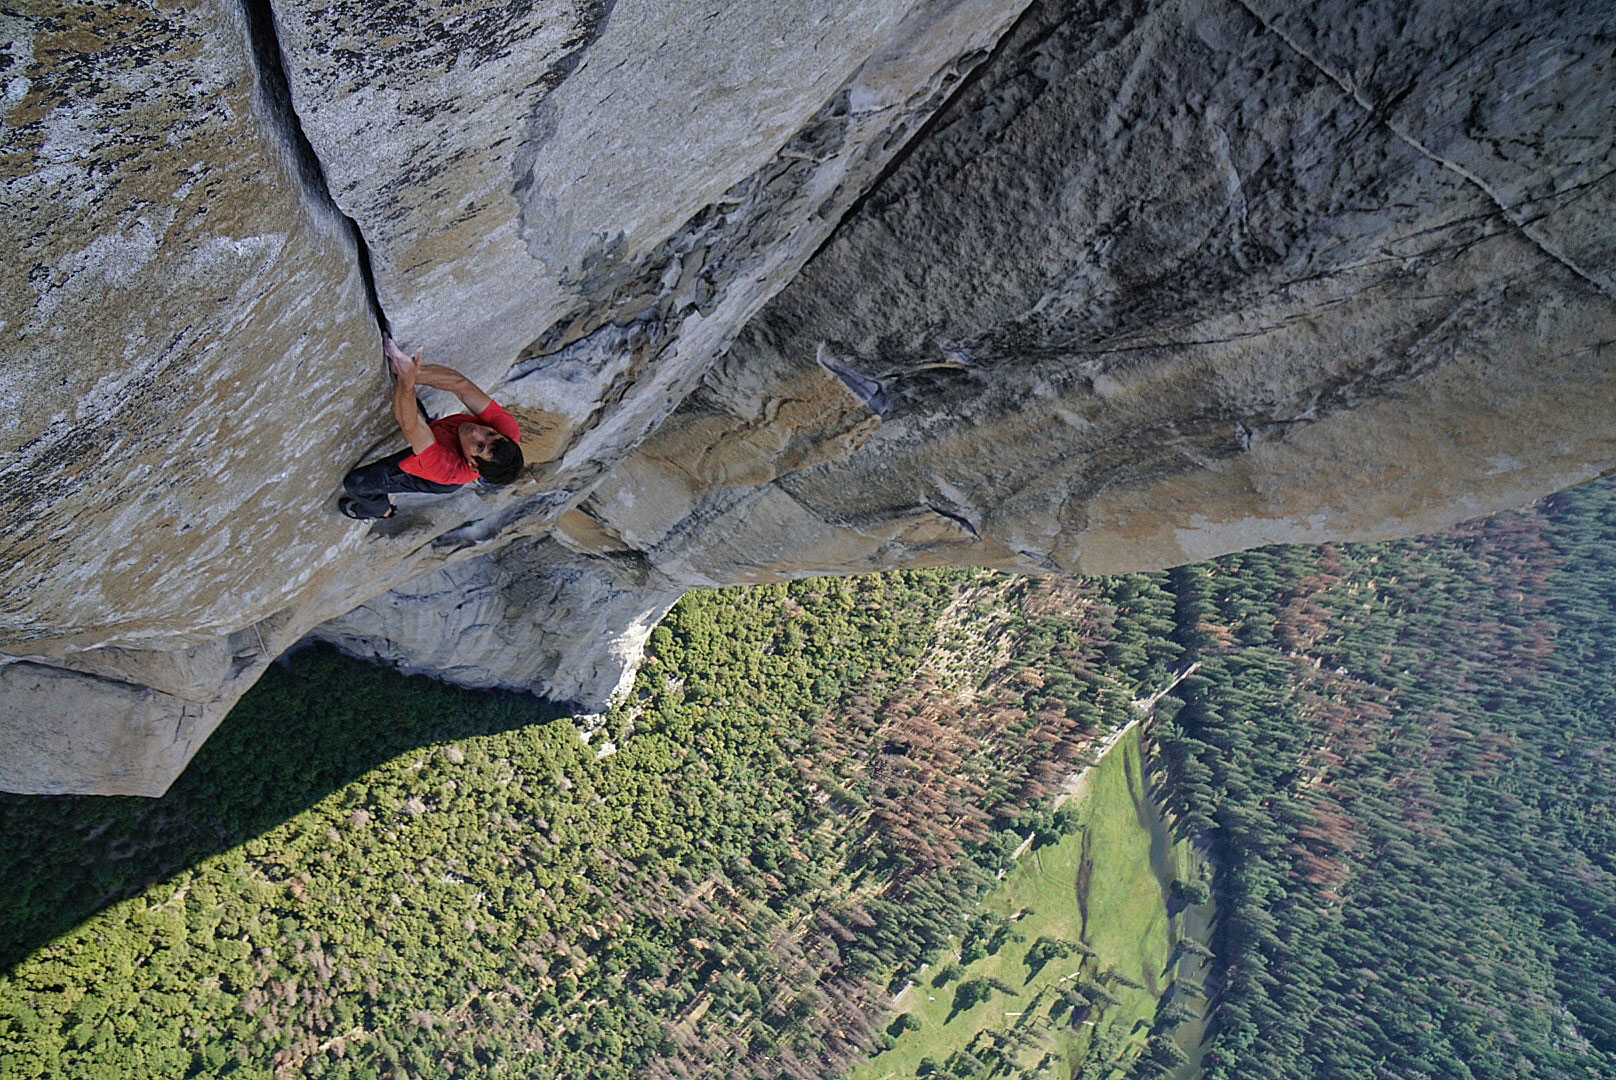 Climbing El Capitan in Yosemite National Park